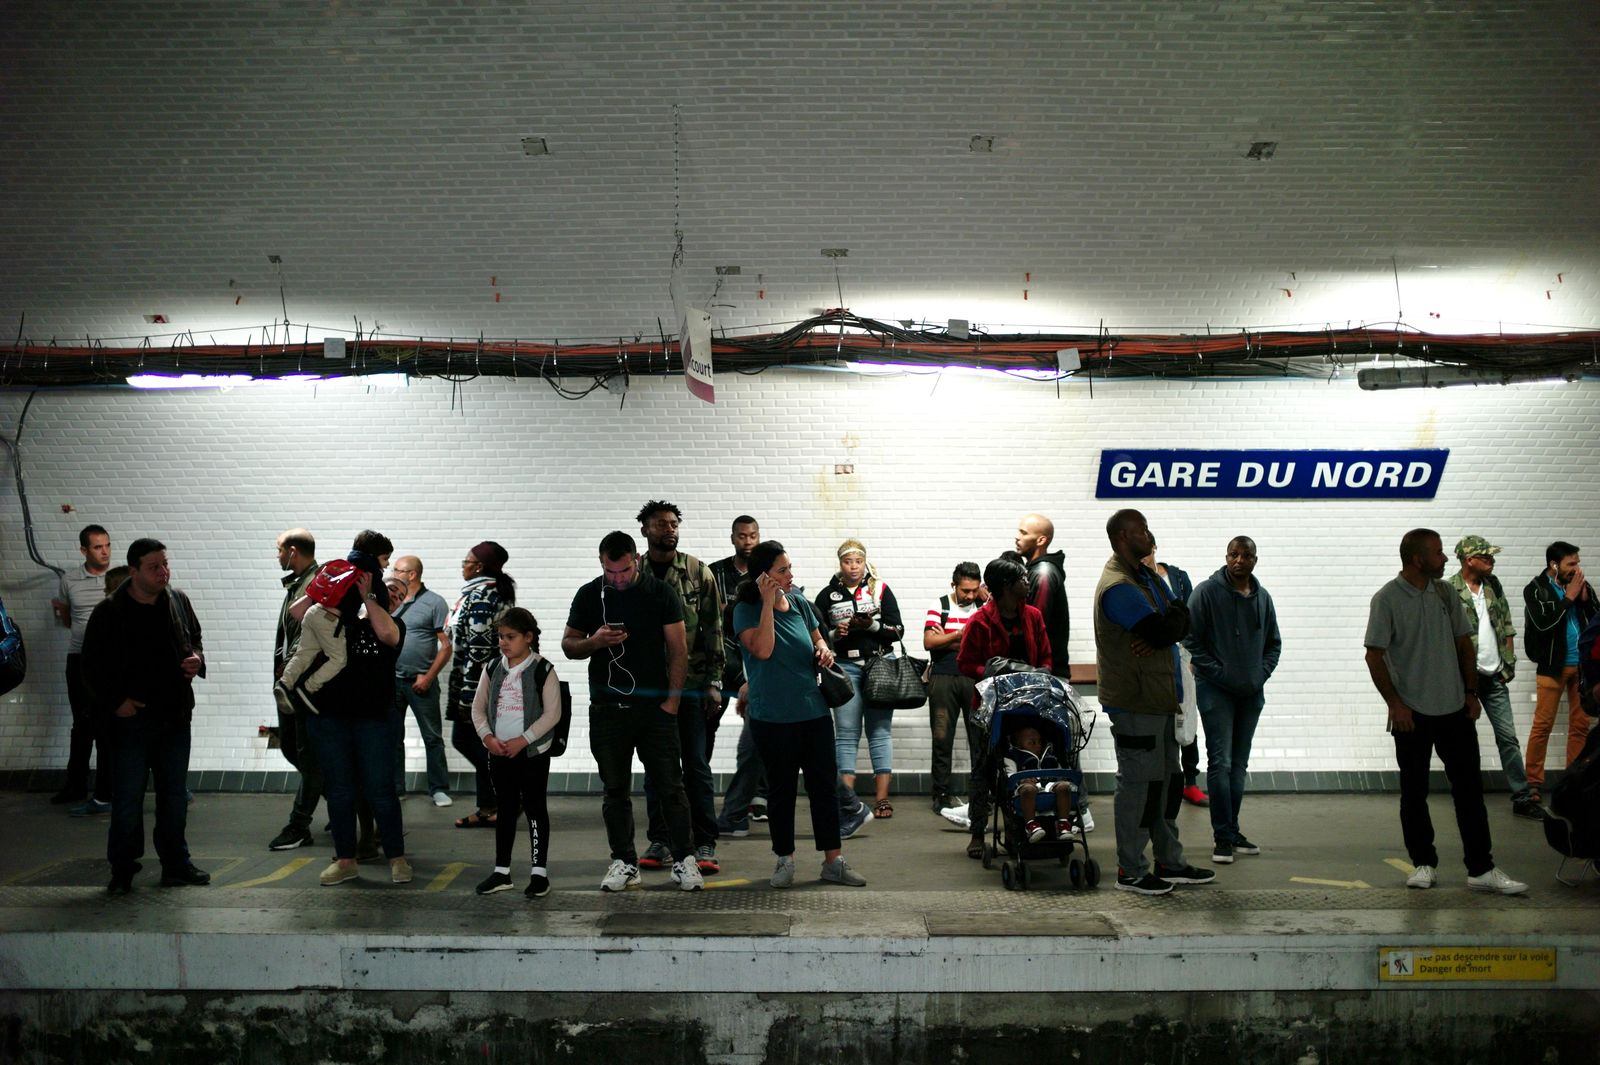 Commuters wait to board a train, in Gare du Nord railway station, in Paris, Friday, Sept. 13, 2019. Paris metro warns over major strike, transport chaos Friday. (AP Photo/Thibault Camus)